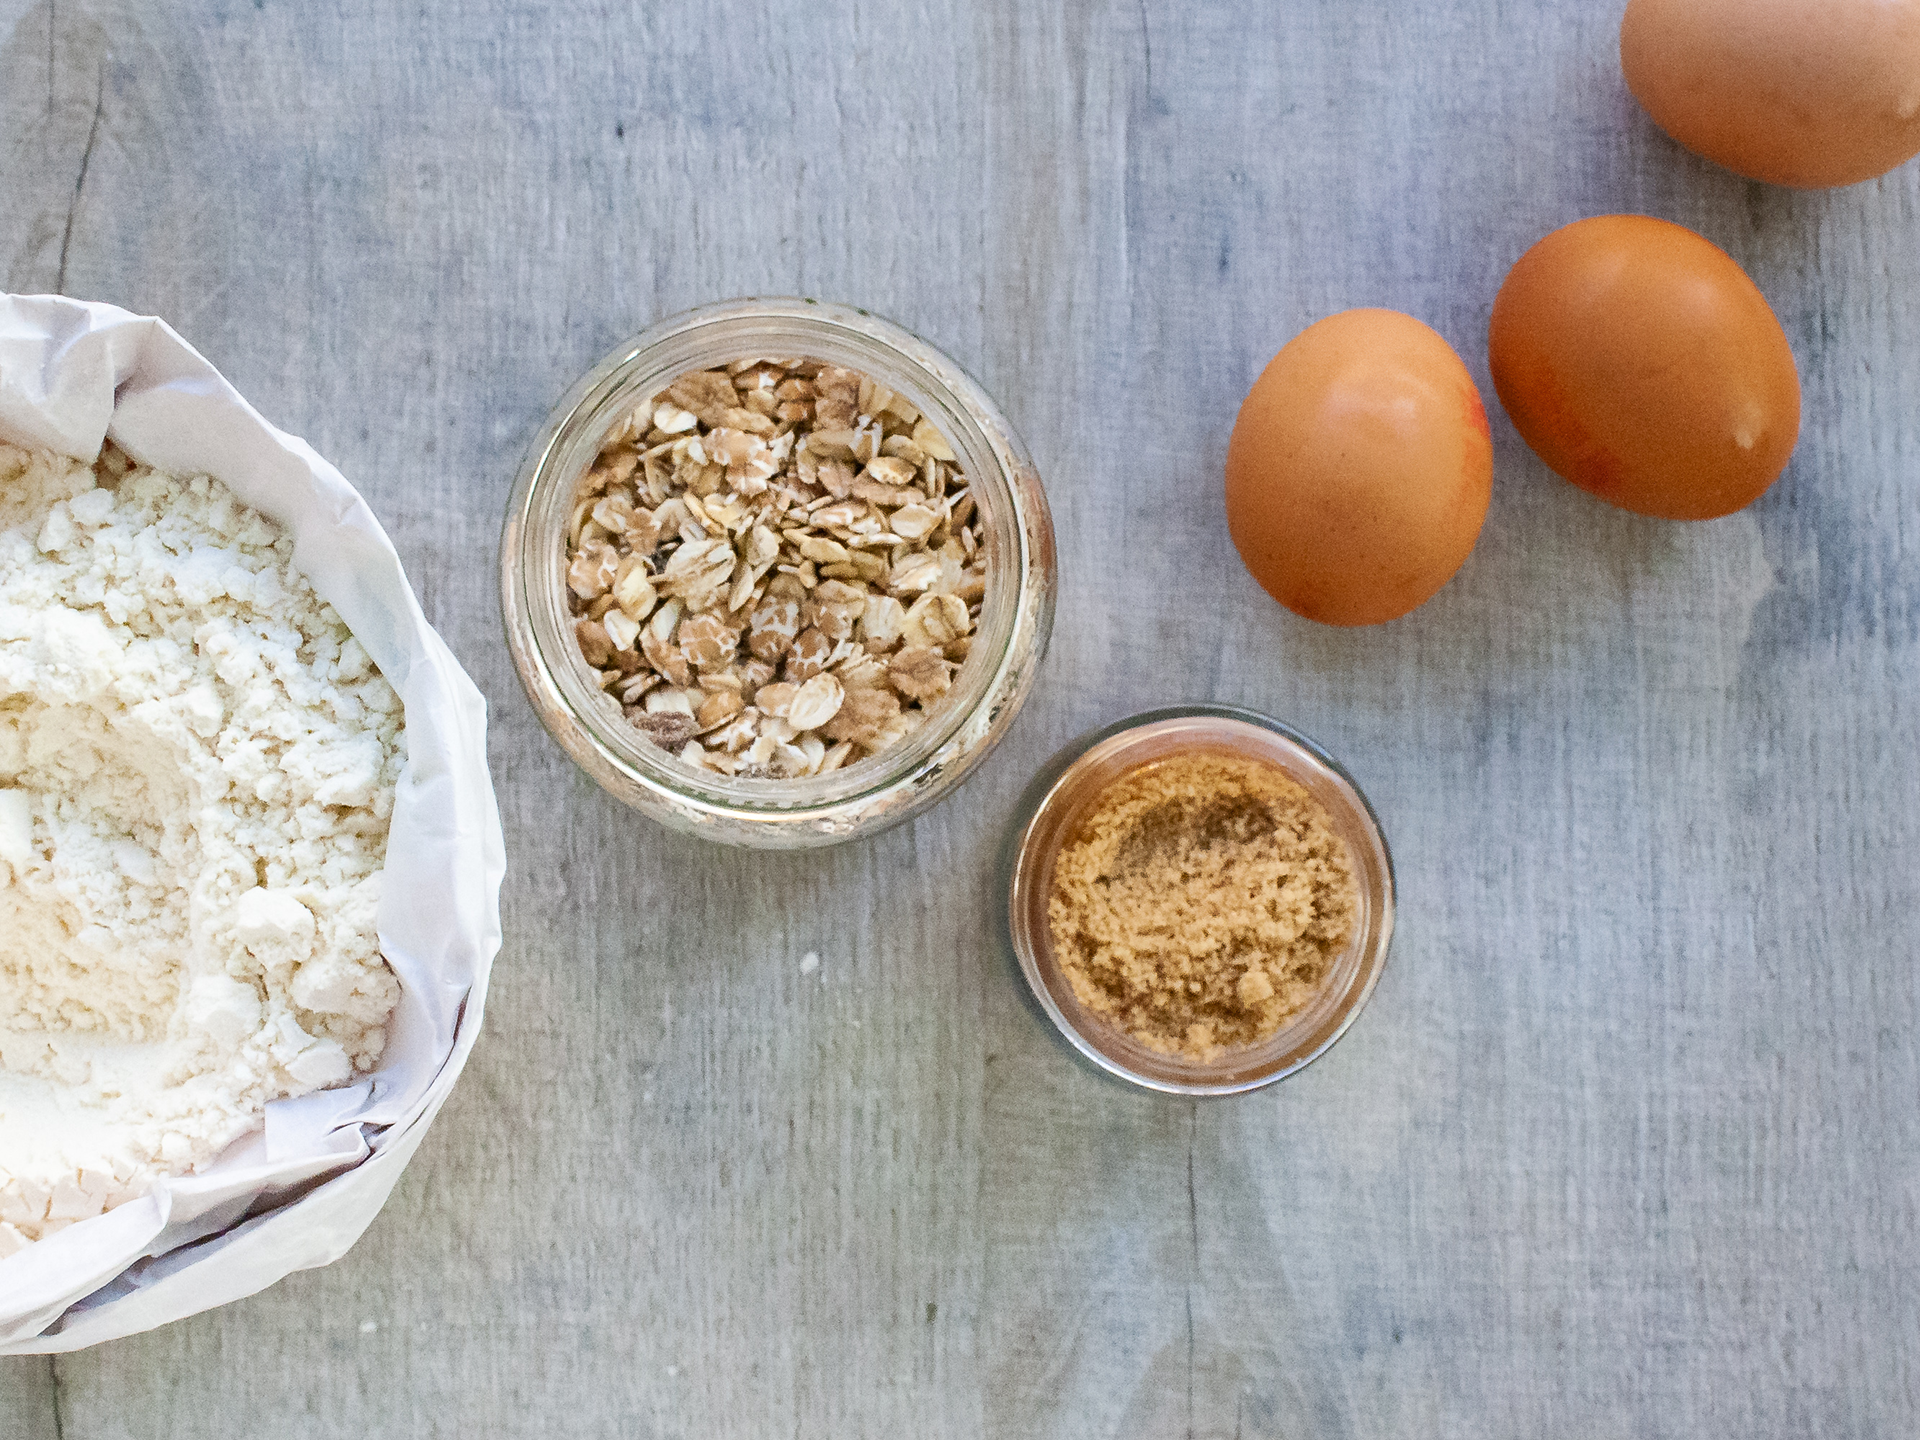 Understanding the different type of ingredients improves your baking